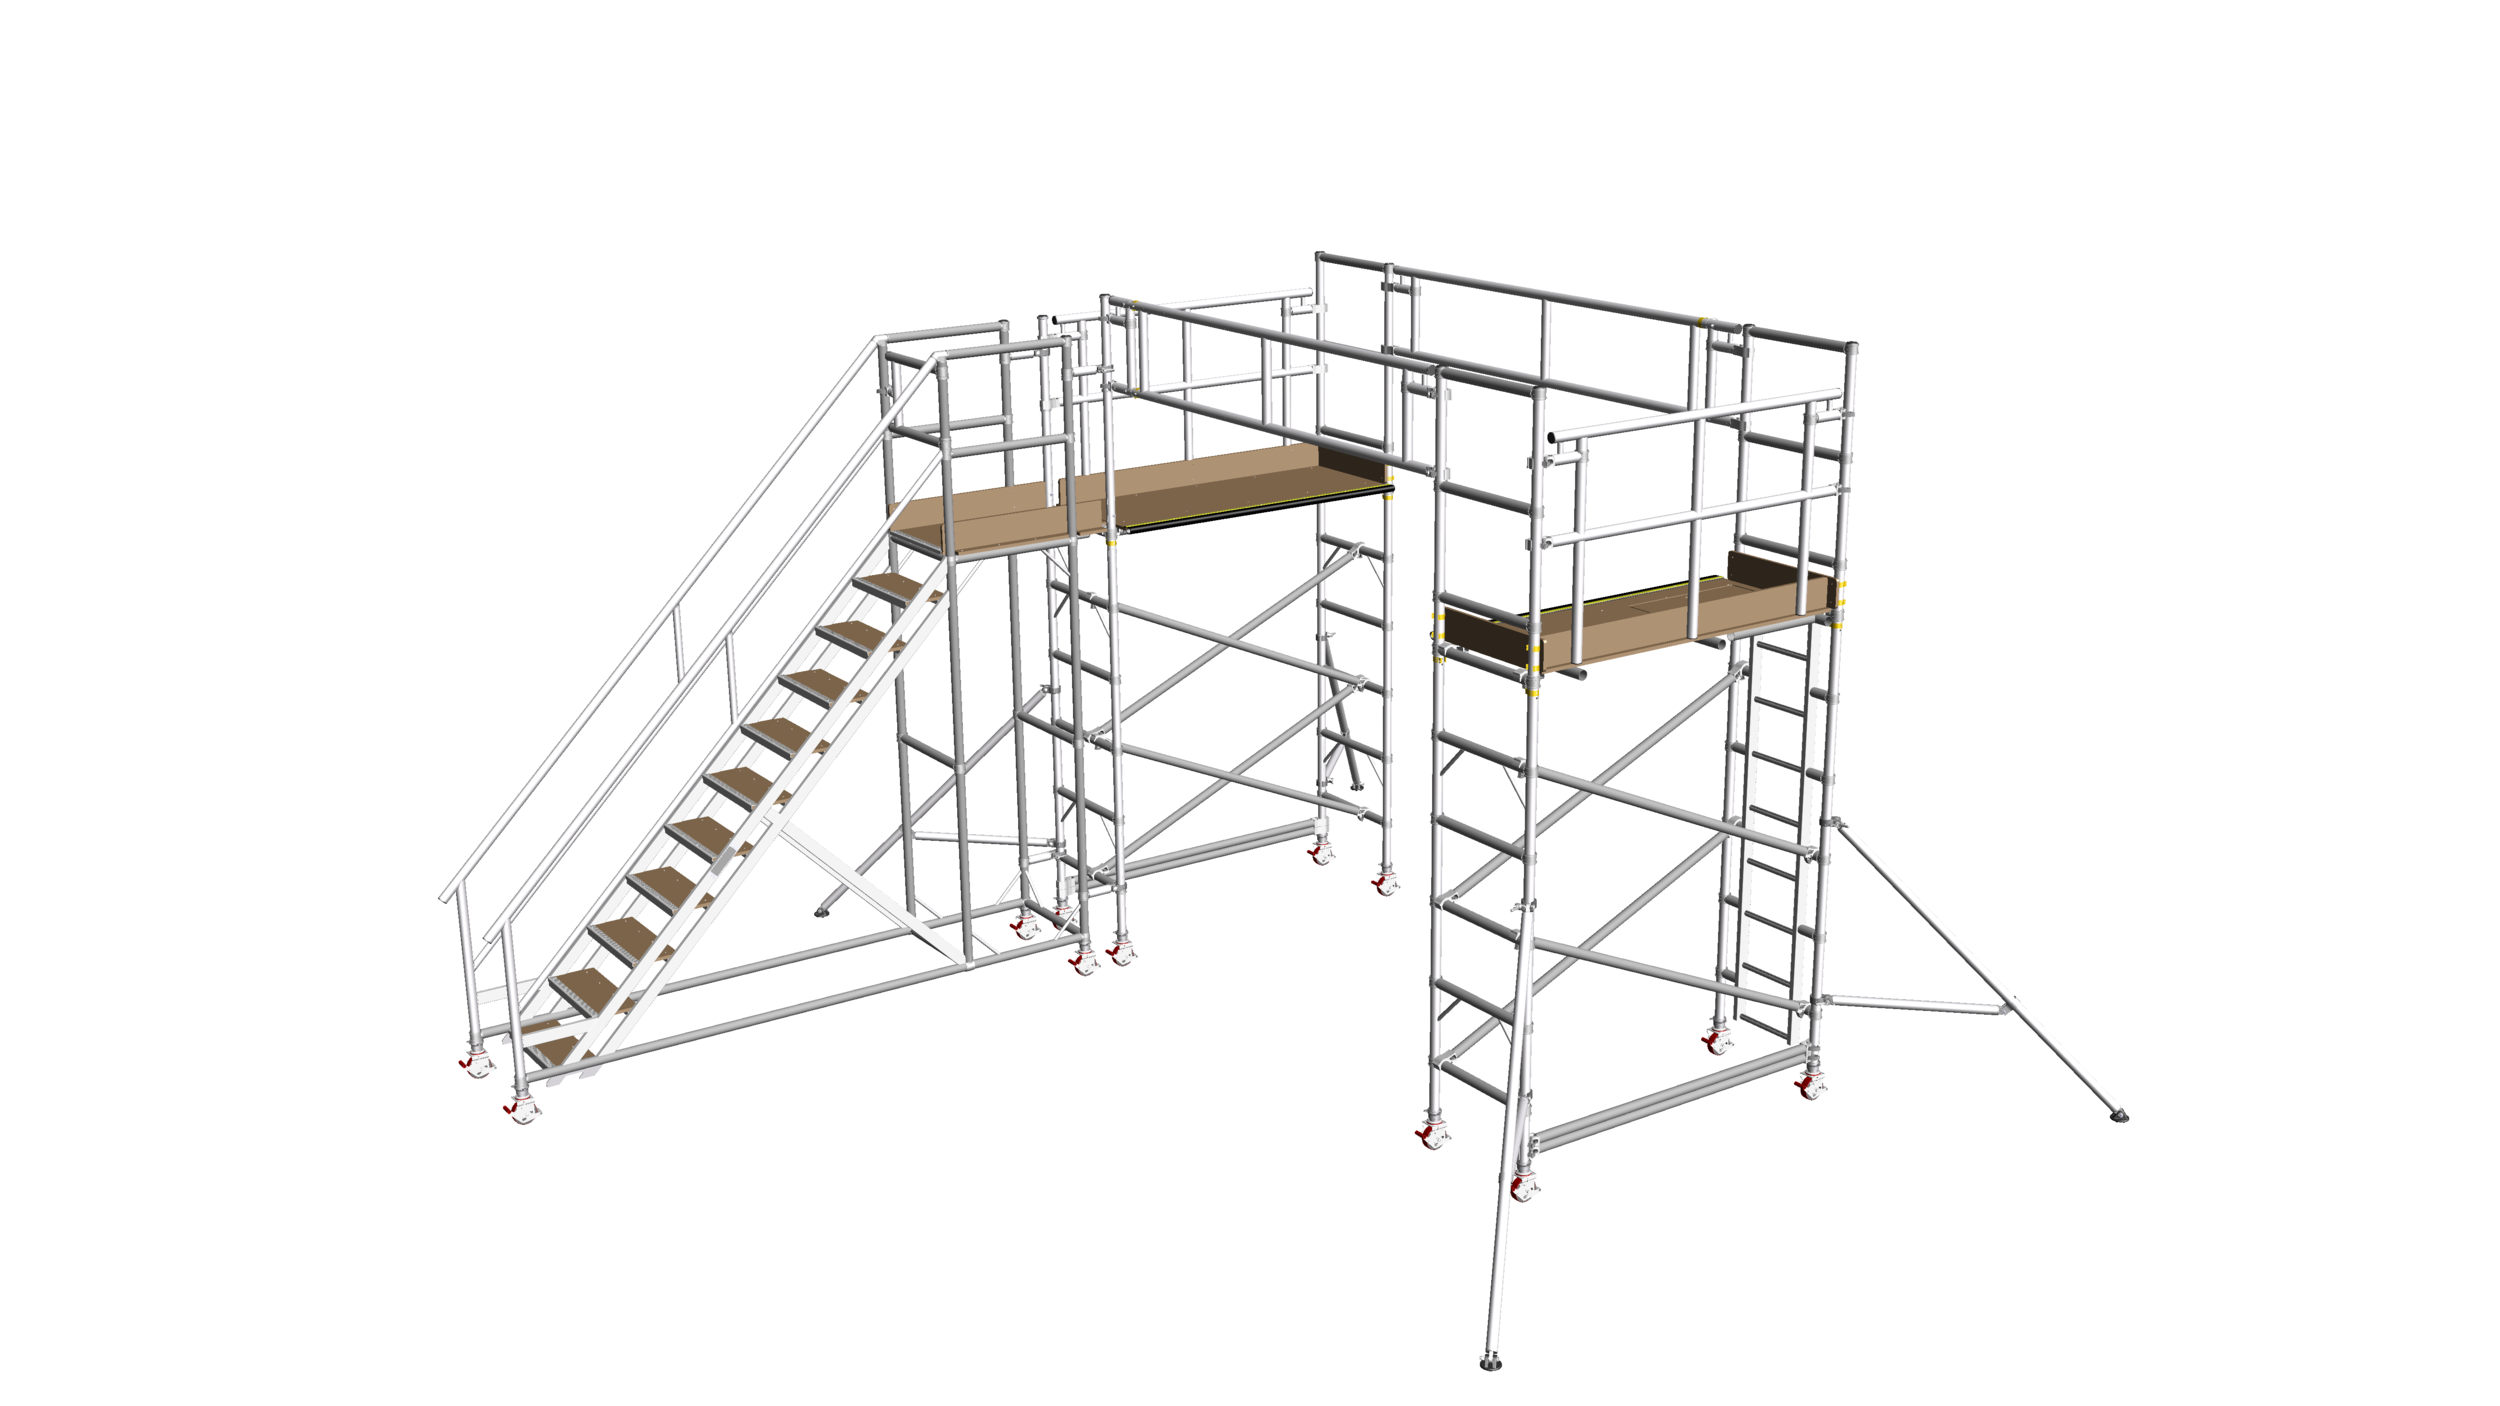 2. Vehicle roof access system